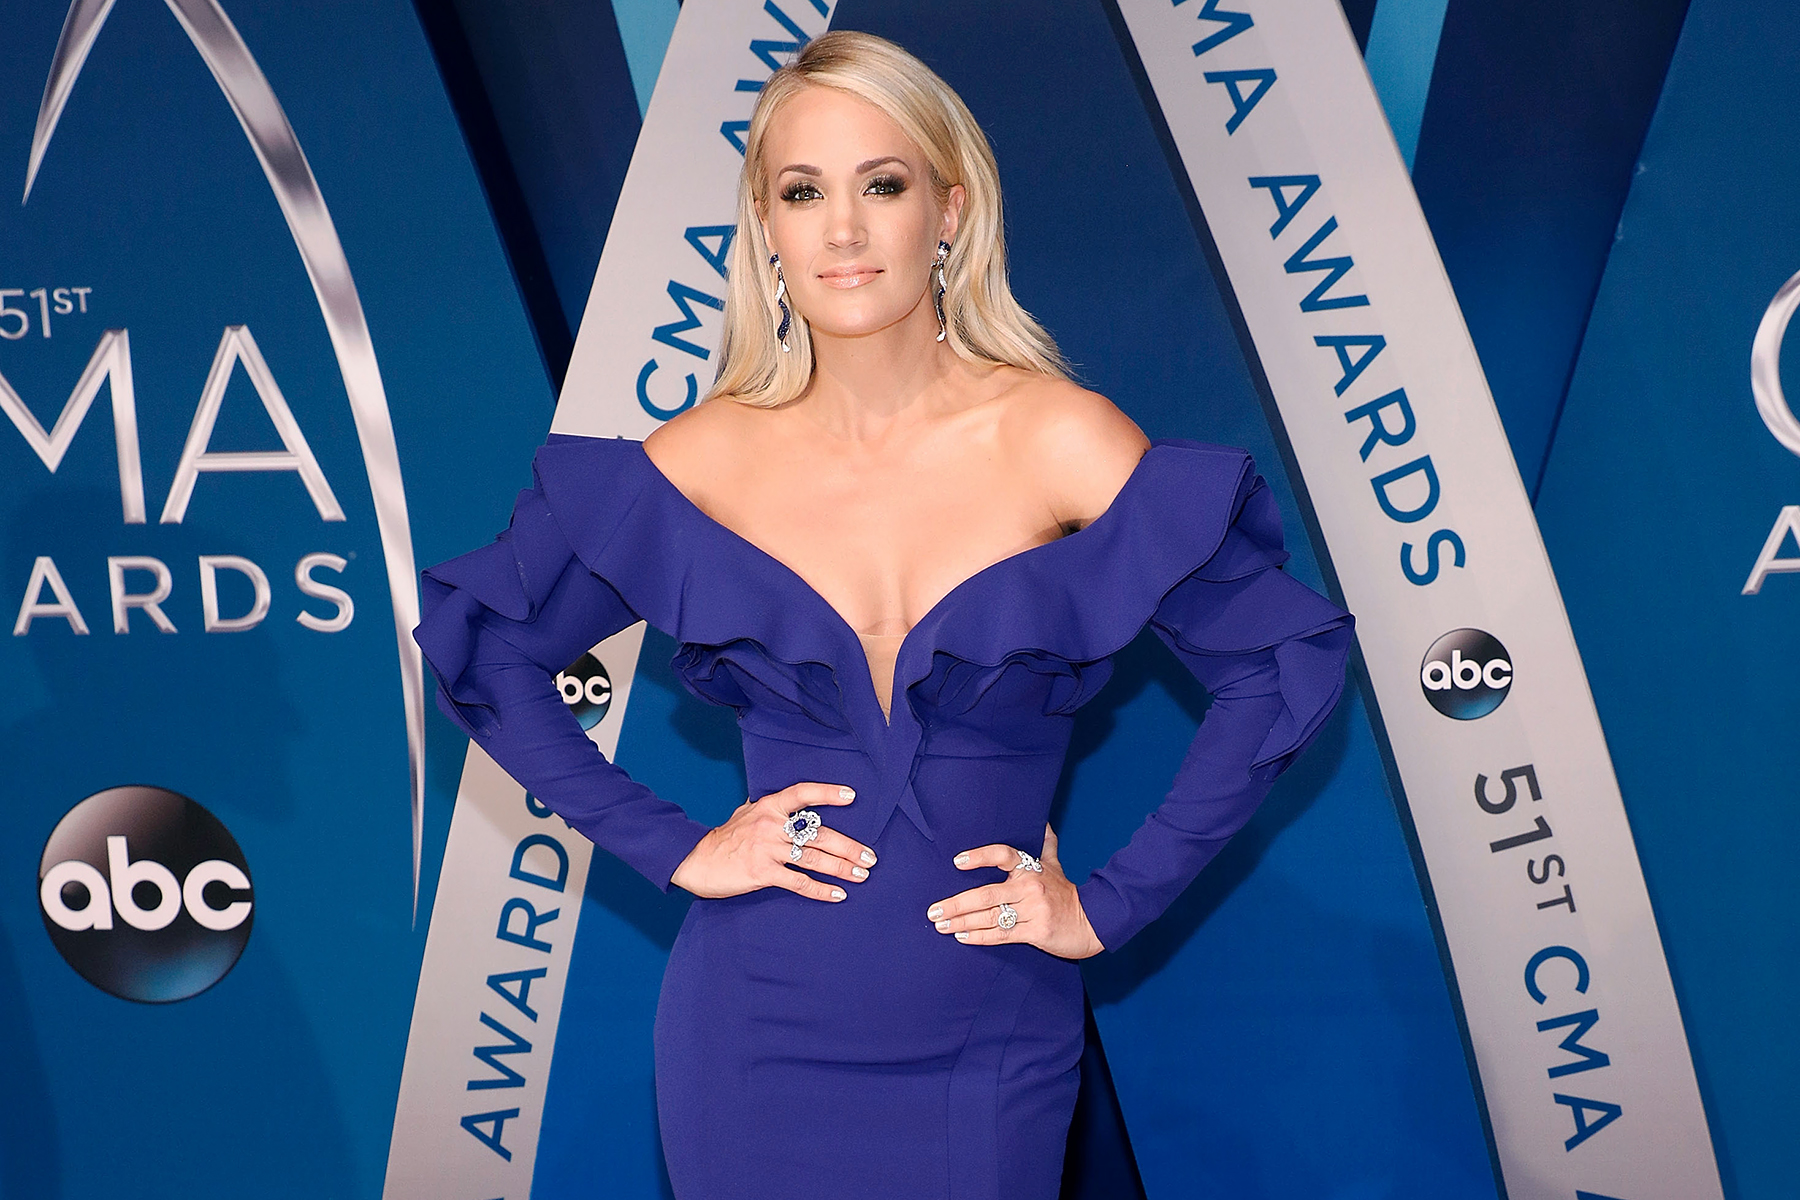 Carrie Underwood Photographed After Serious Injury Requiring 40 Stitches